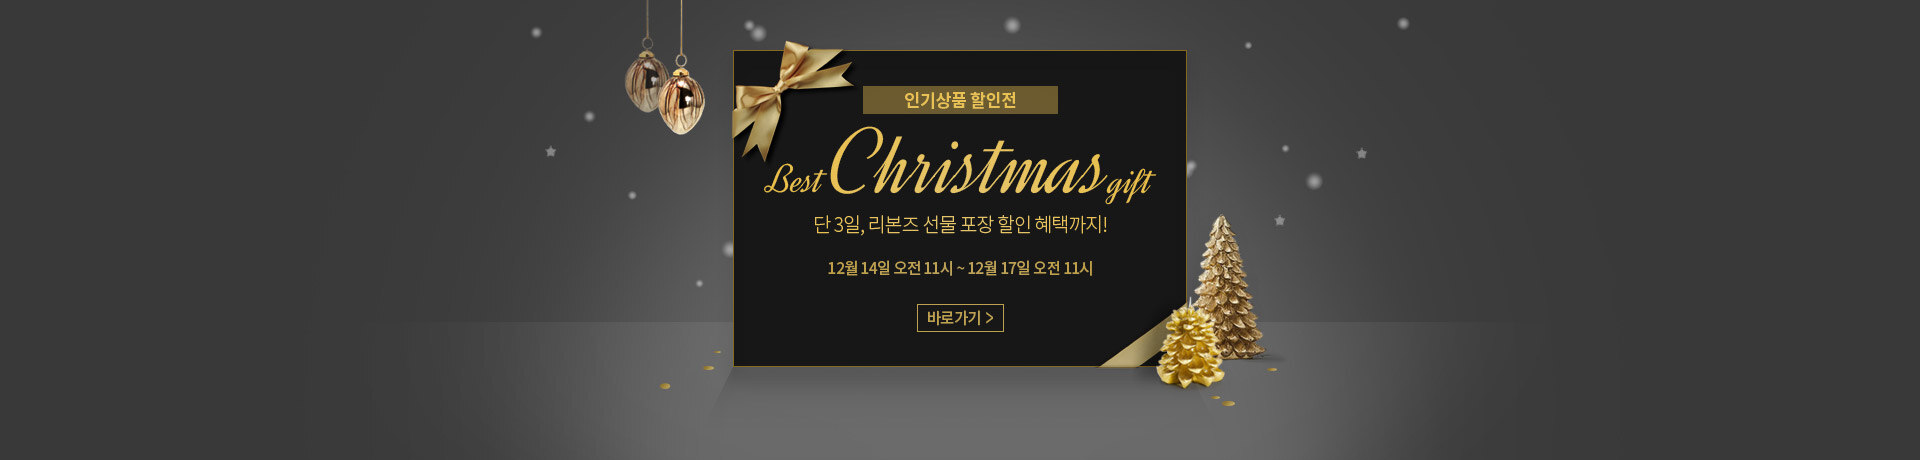 181214_ma_best-christmas-gift_pc-3__-_393939